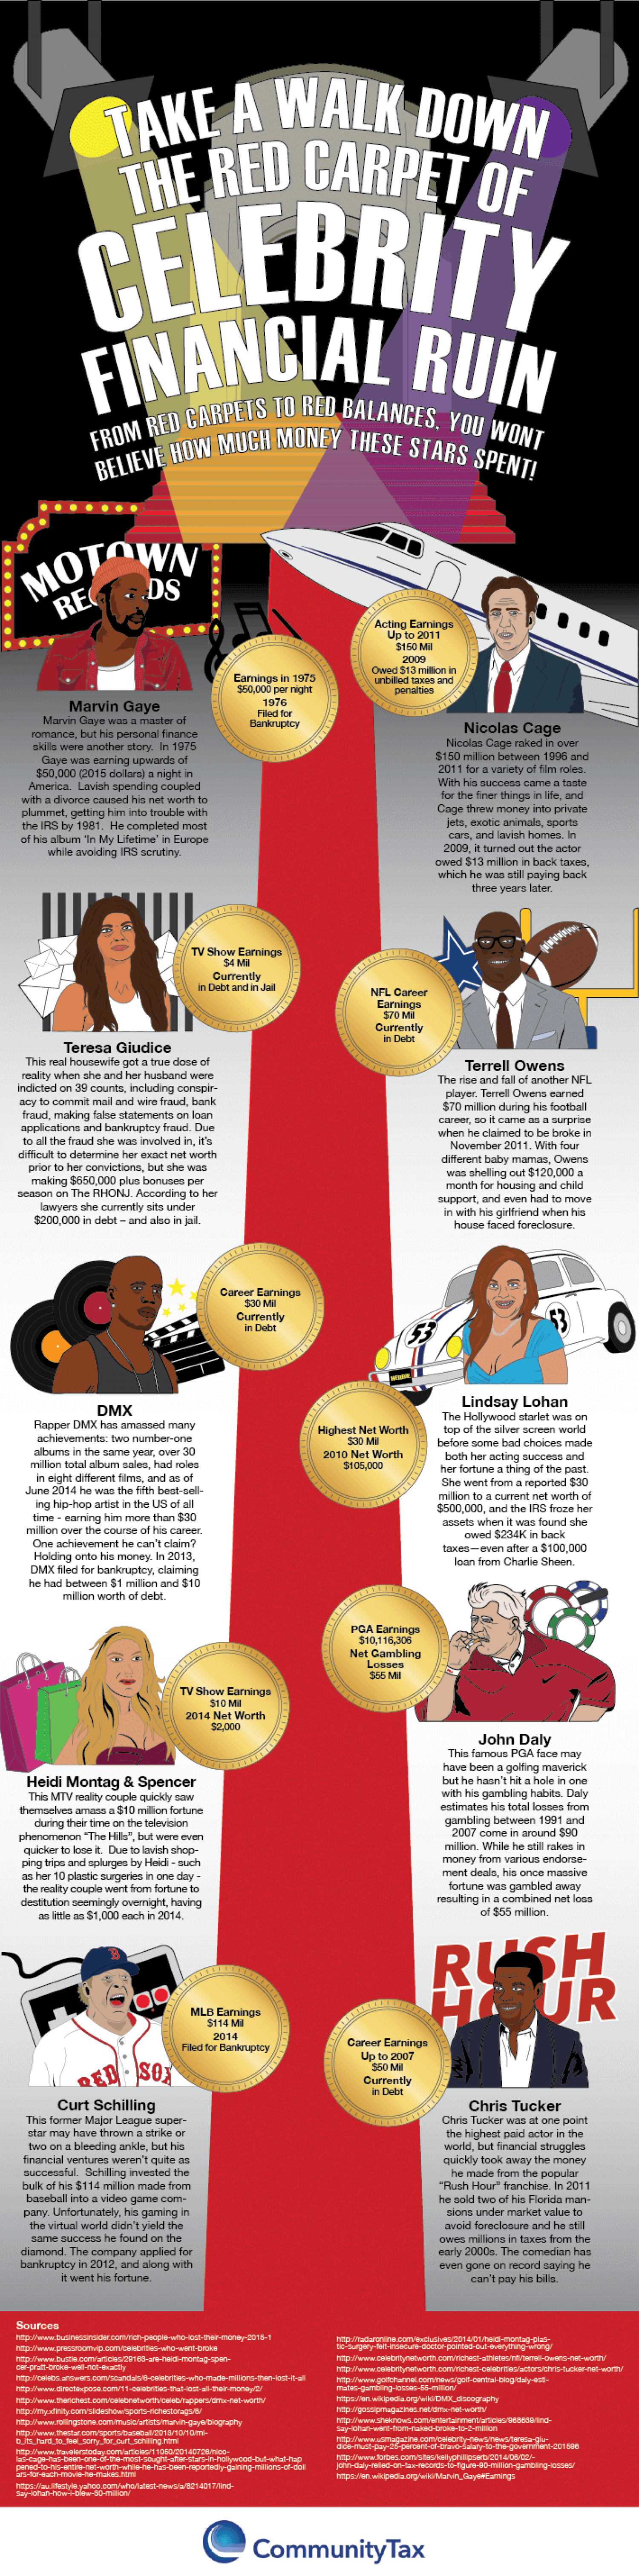 Top 5 Celebrity Tax Evaders - New Theory Magazine